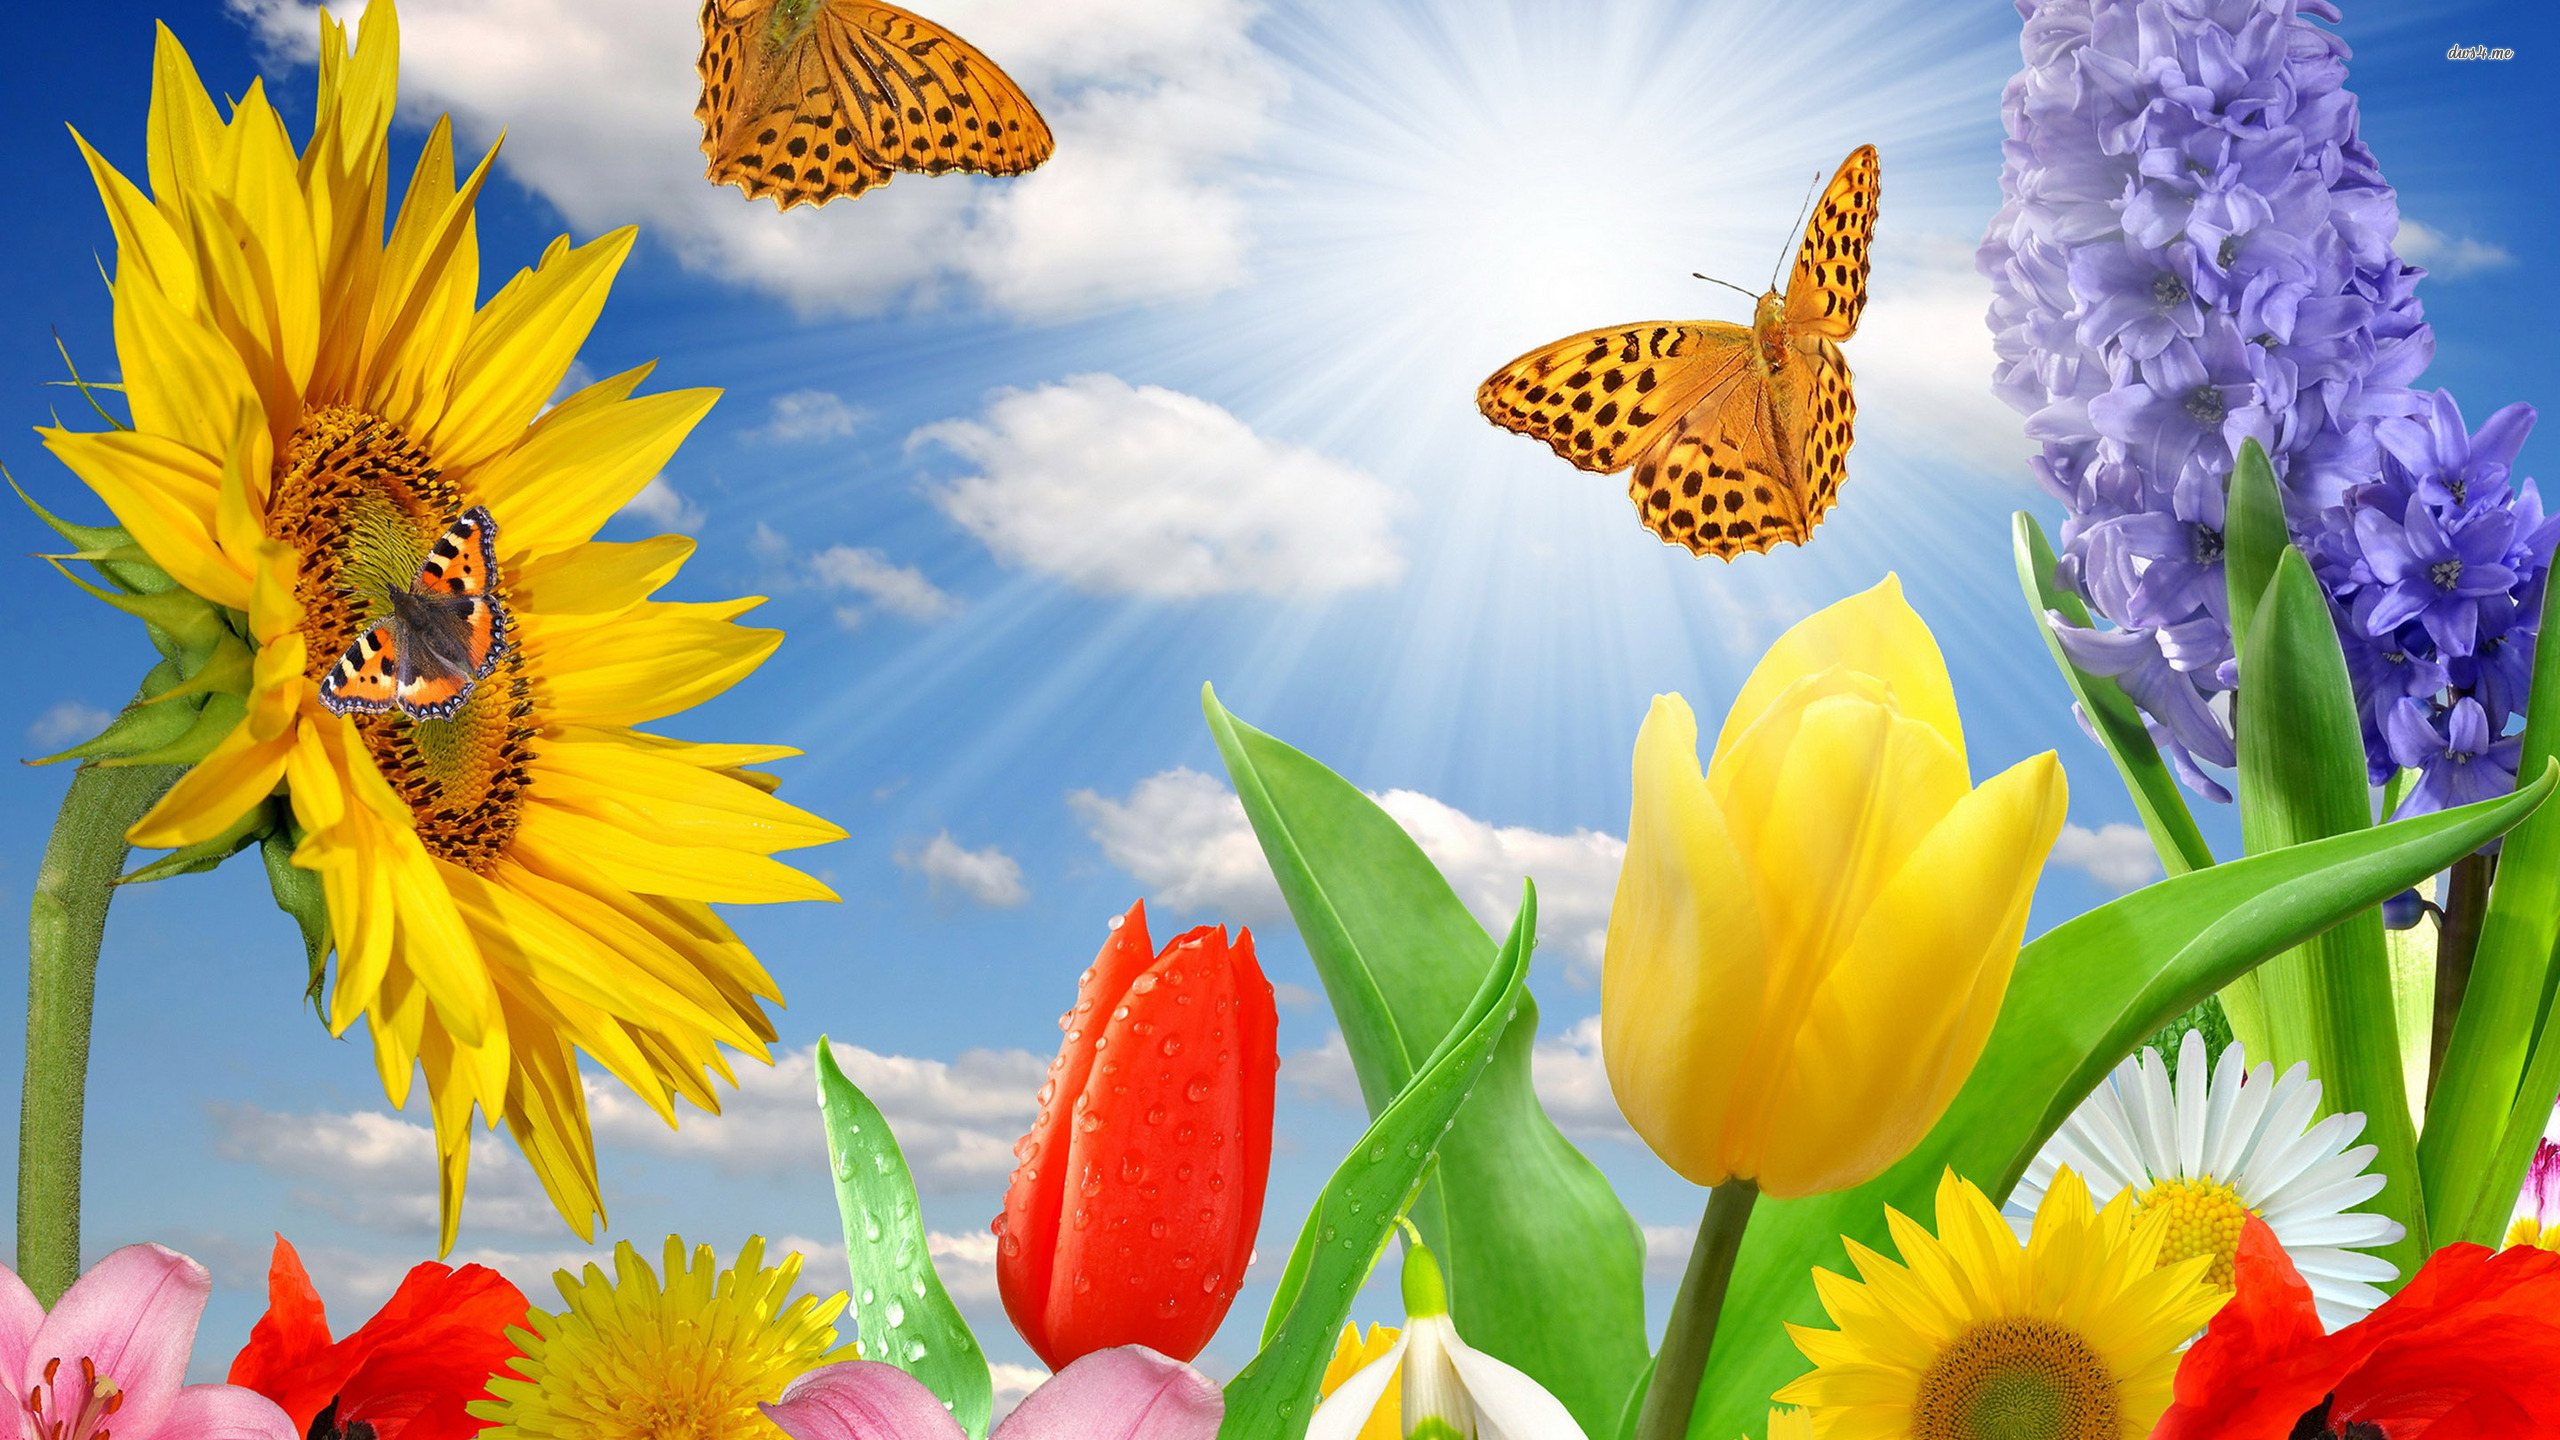 Top Wallpaper Butterfly Spring - Spring-Flowers-And-Butterflies-Wallpaper-1  Pictures_479484.jpg